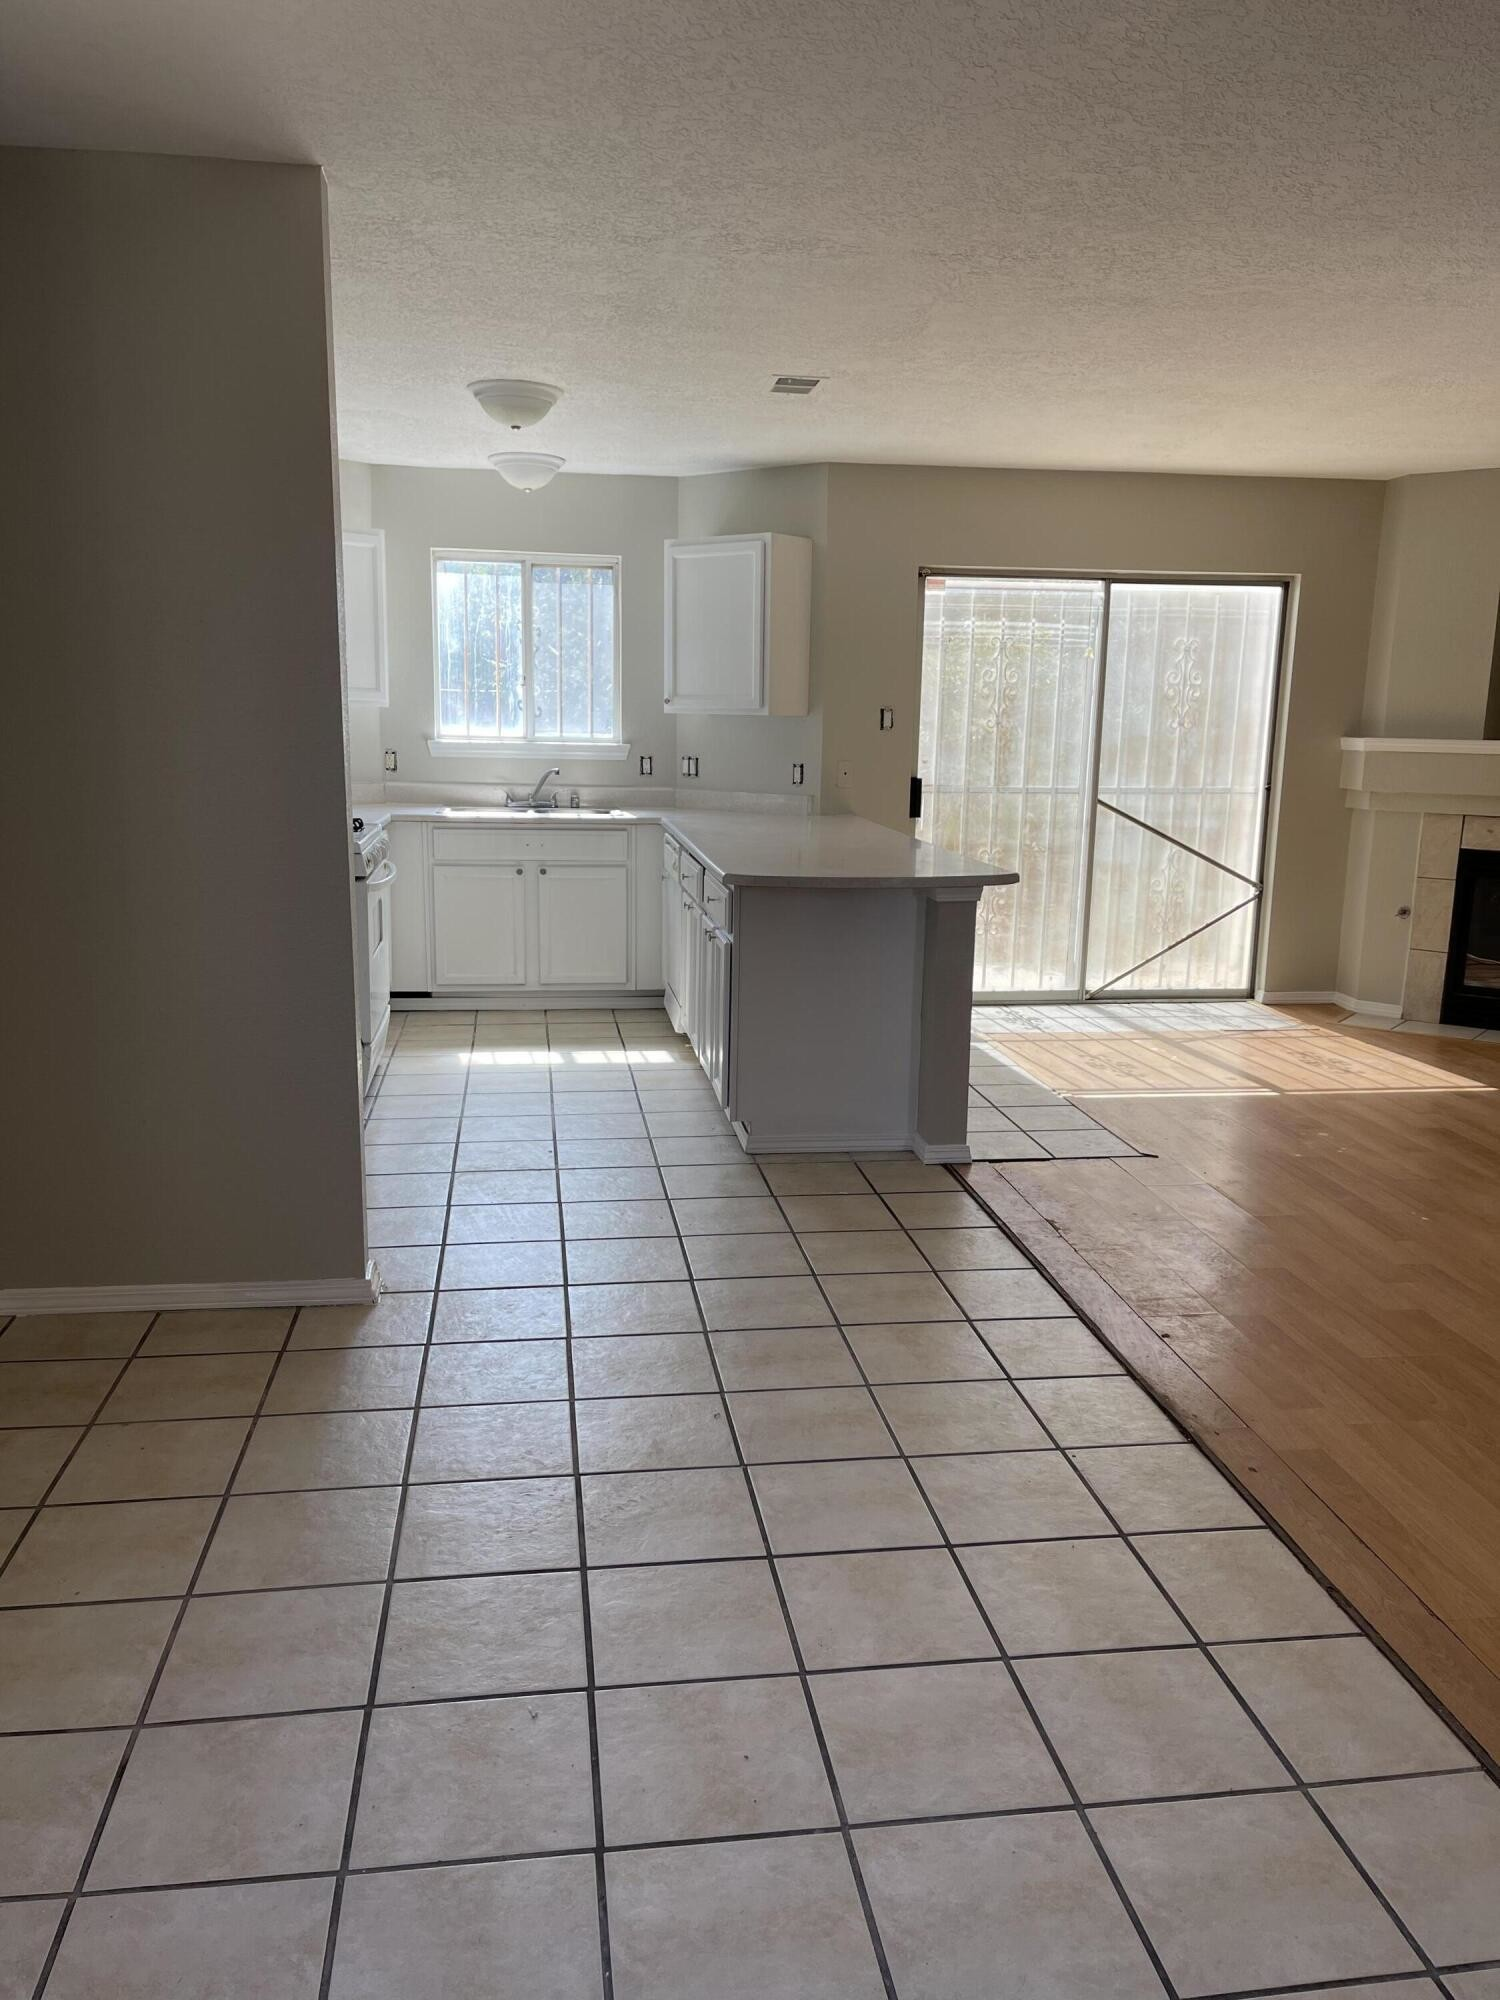 Updated 3-Bedroom House In Alamosa